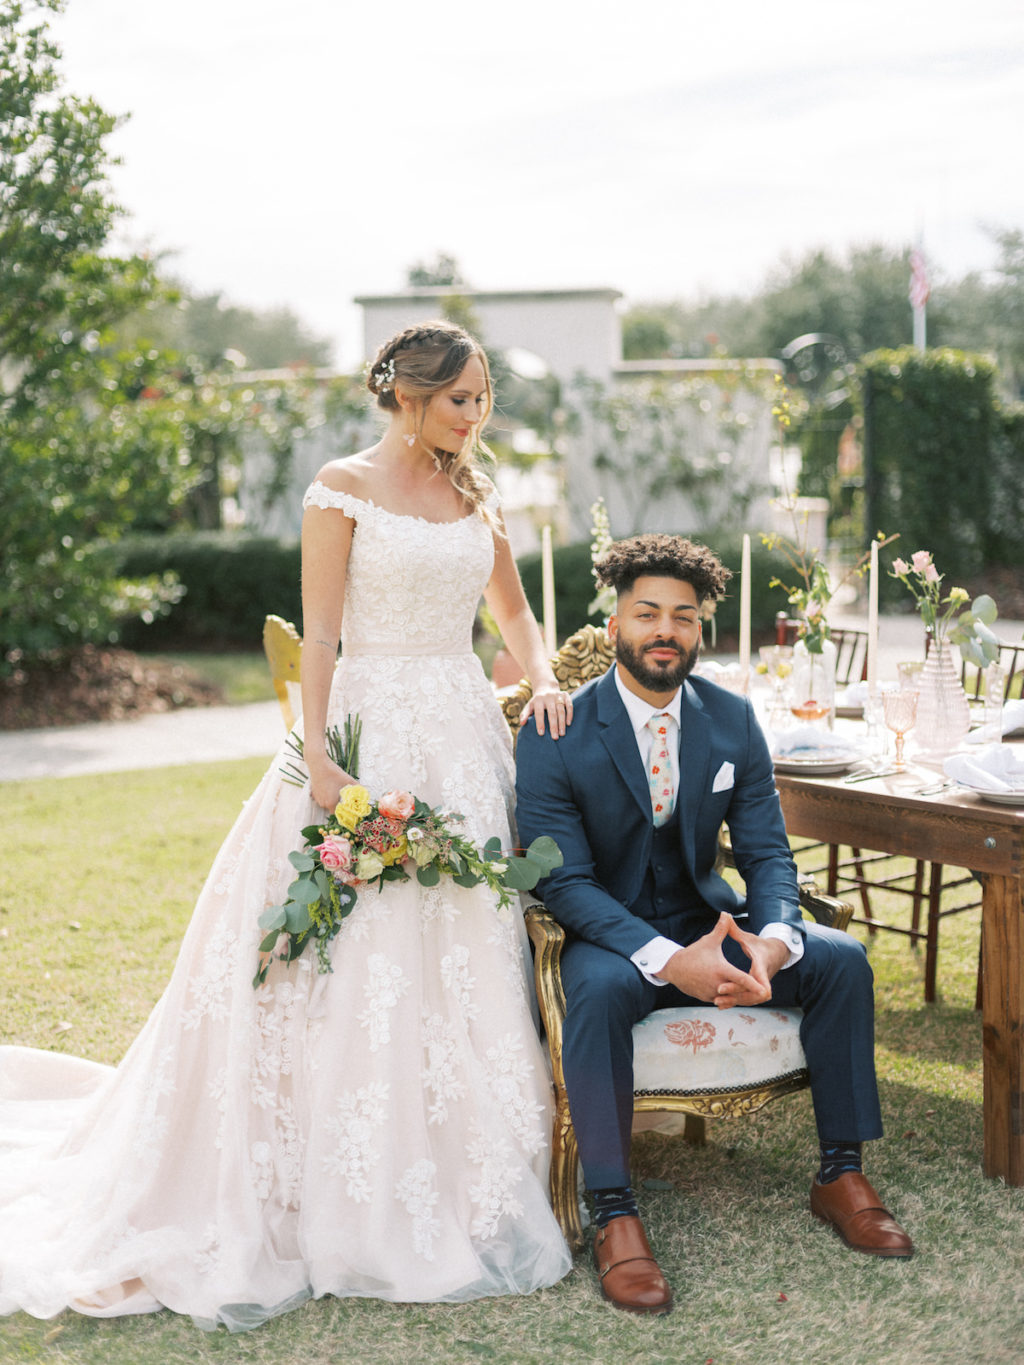 Tampa Styled Shoot European Pastel Spring Wedding Inspiration | Bride and Groom Outdoor Garden Portraits | Lace Ball Gown Wedding Dress and Navy Blue Suit | Sarasota Wedding Dress Boutique Truly Forever Bridal